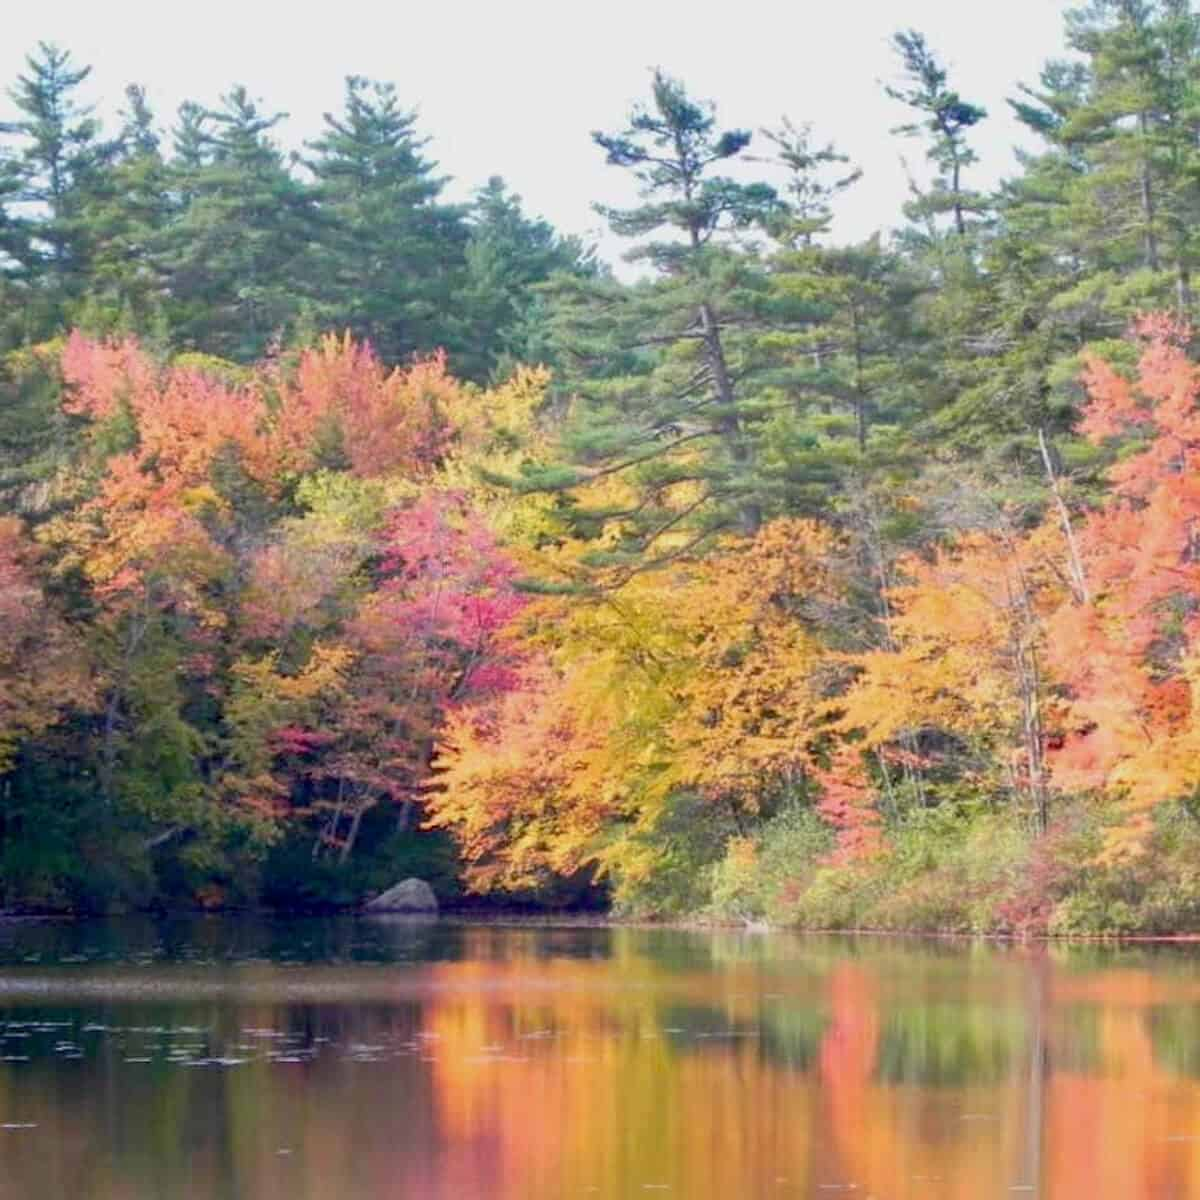 Autumn New England trees reflected in a pond.